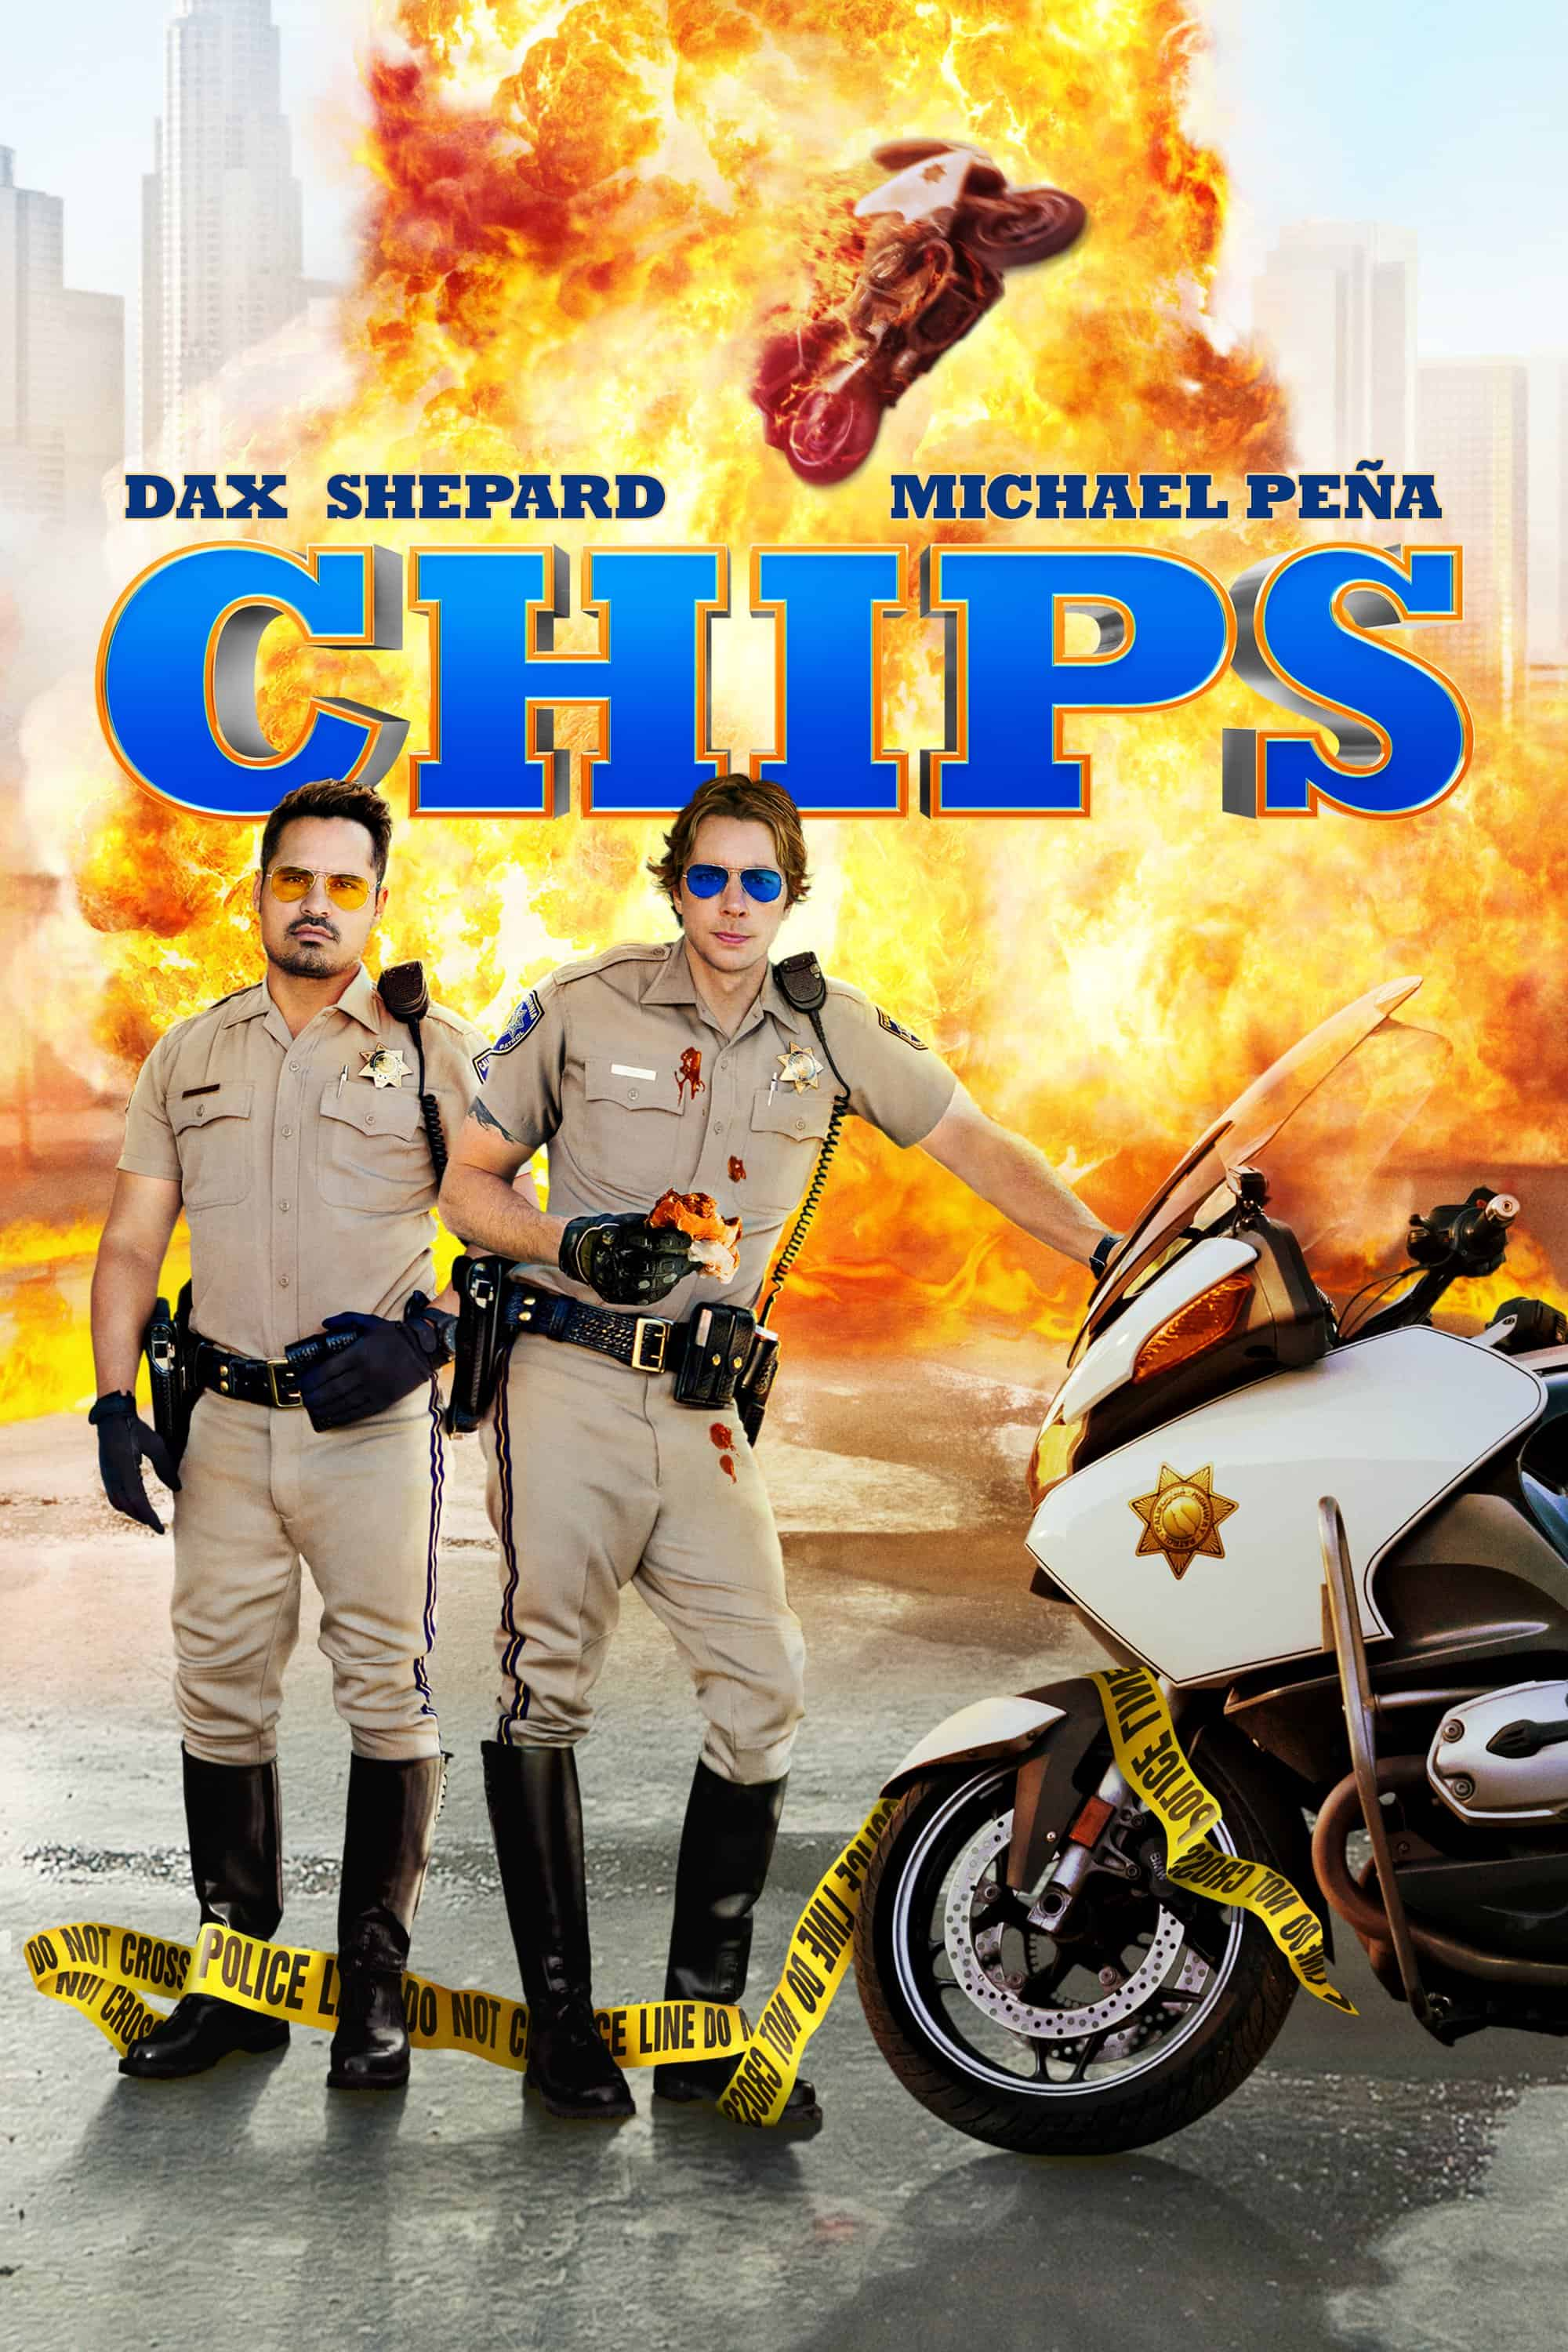 CHiPs, 2017